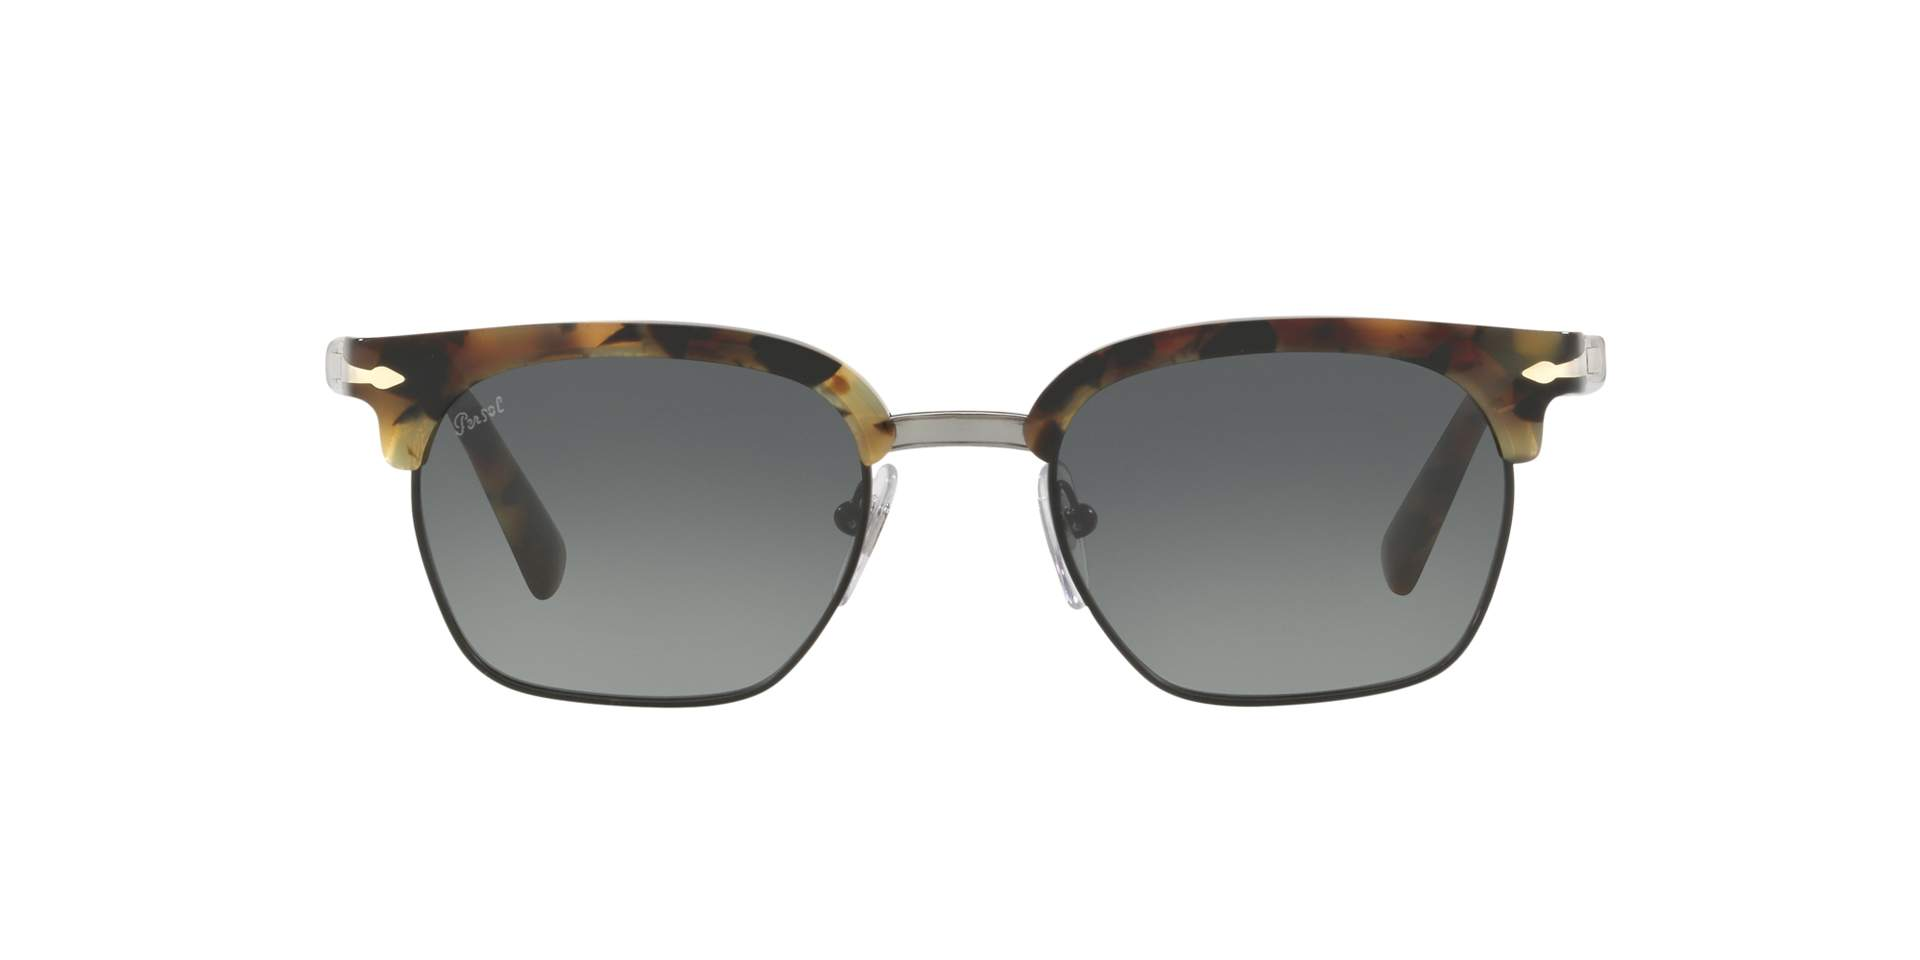 Écaille 107171 Po3199s 90 50 20Prix Persol 165 Edition Tailoring k0wPn8O